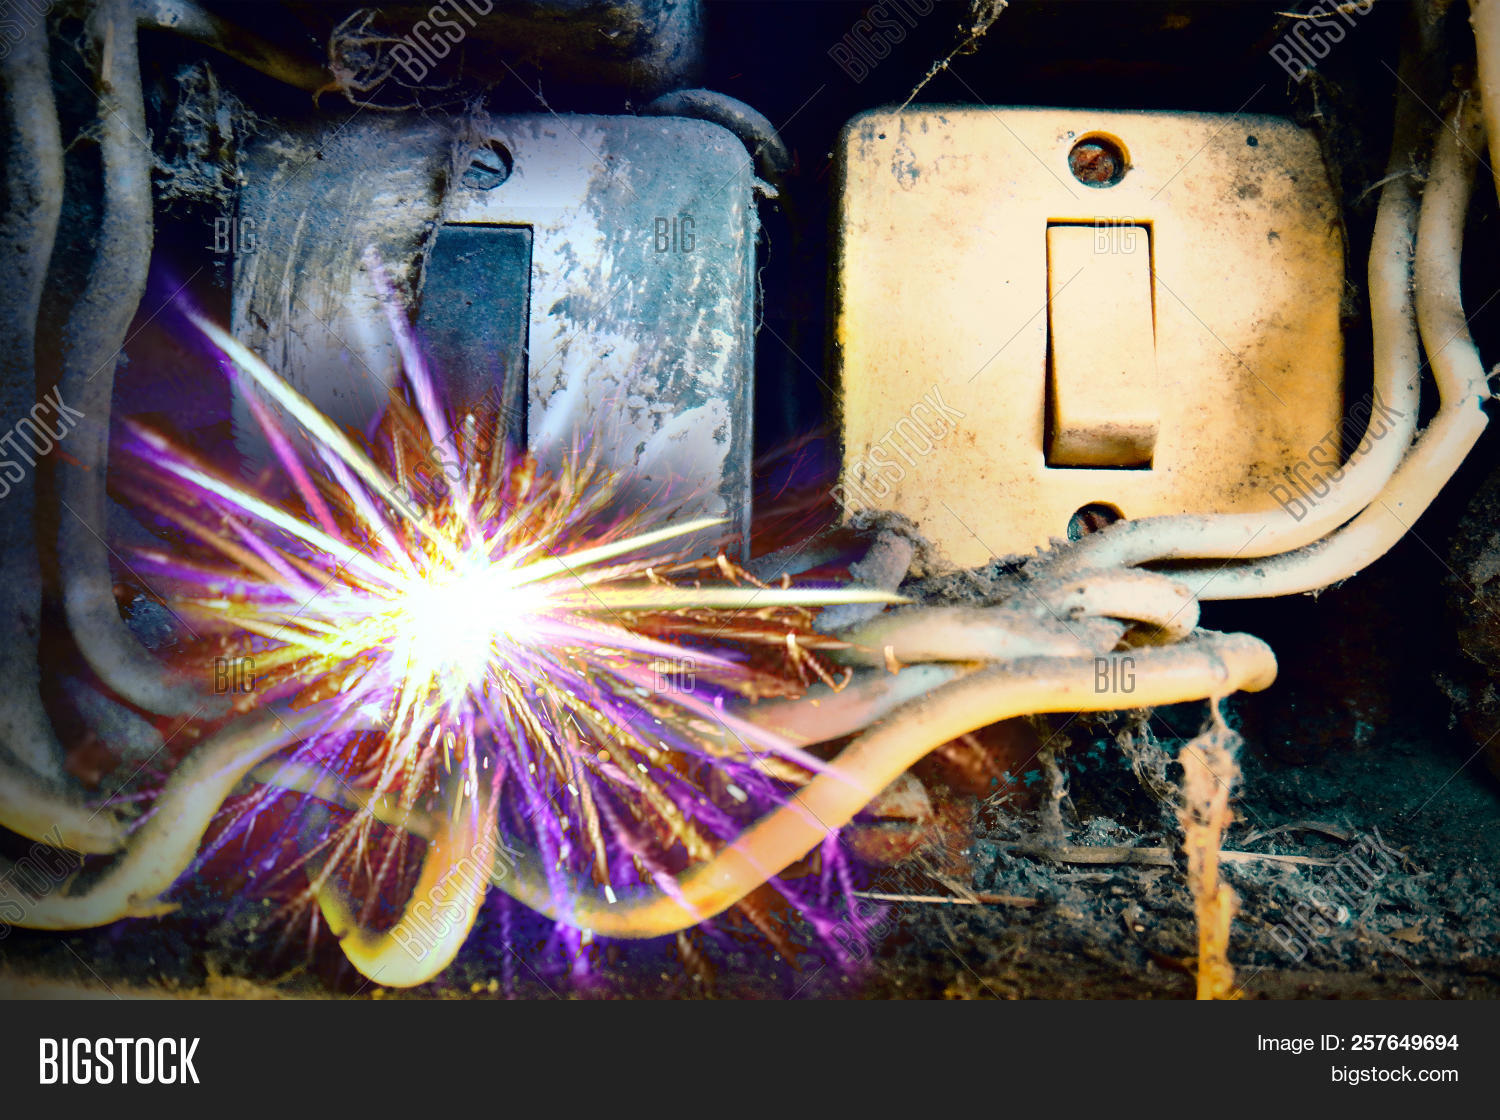 electricity short circuit, electrical failure resulting in electricity wire  burnt  old electric power supply boxes  industrial background